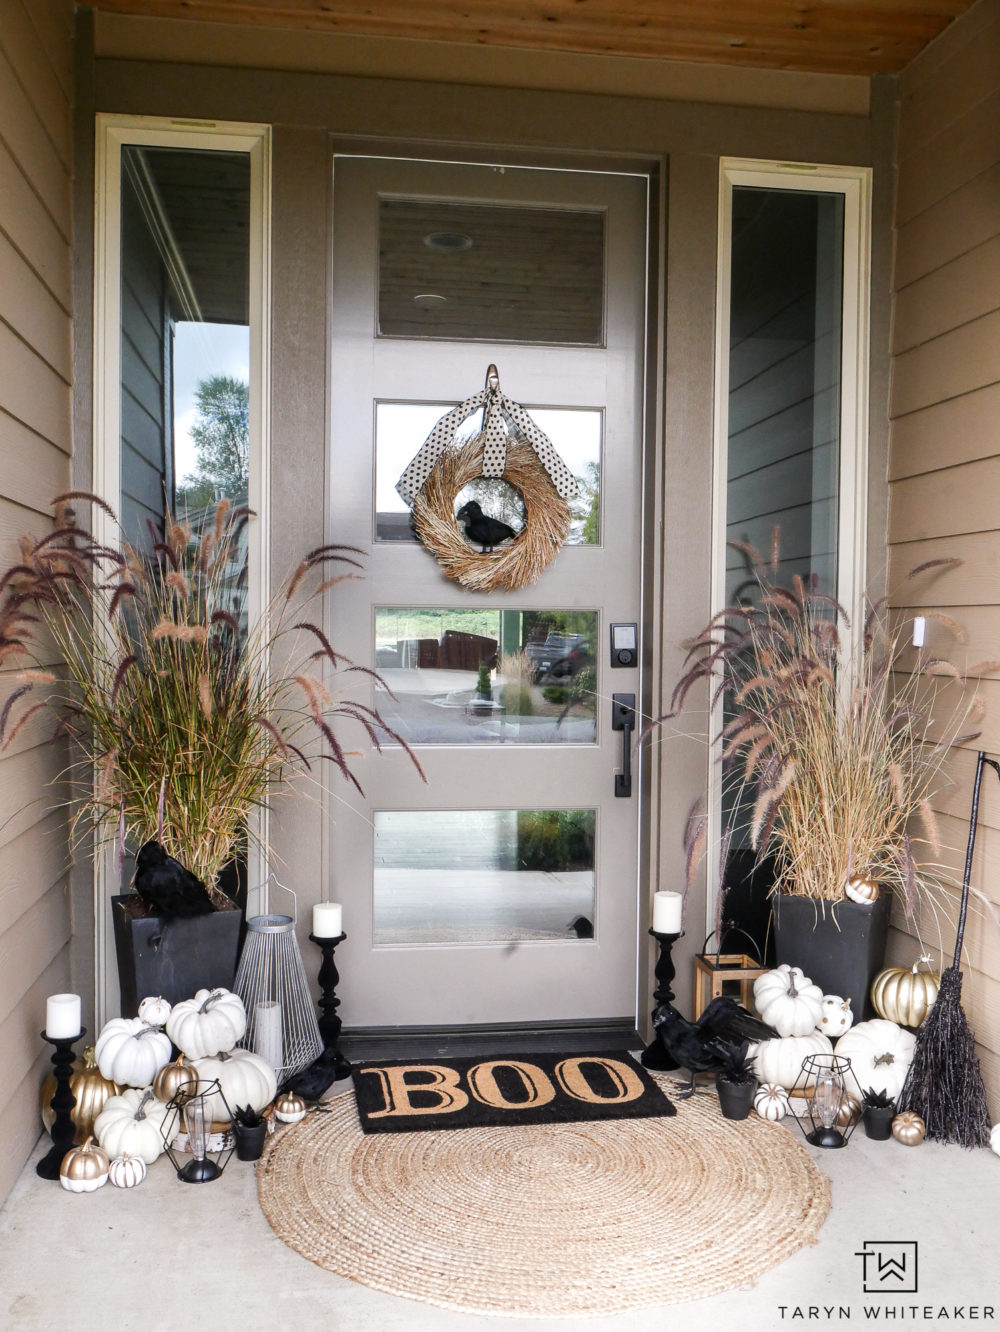 Check out this classy black and white Halloween porch decorations! Complete with black crows, Boo door mat and eclectic mix of lanterns and candles.